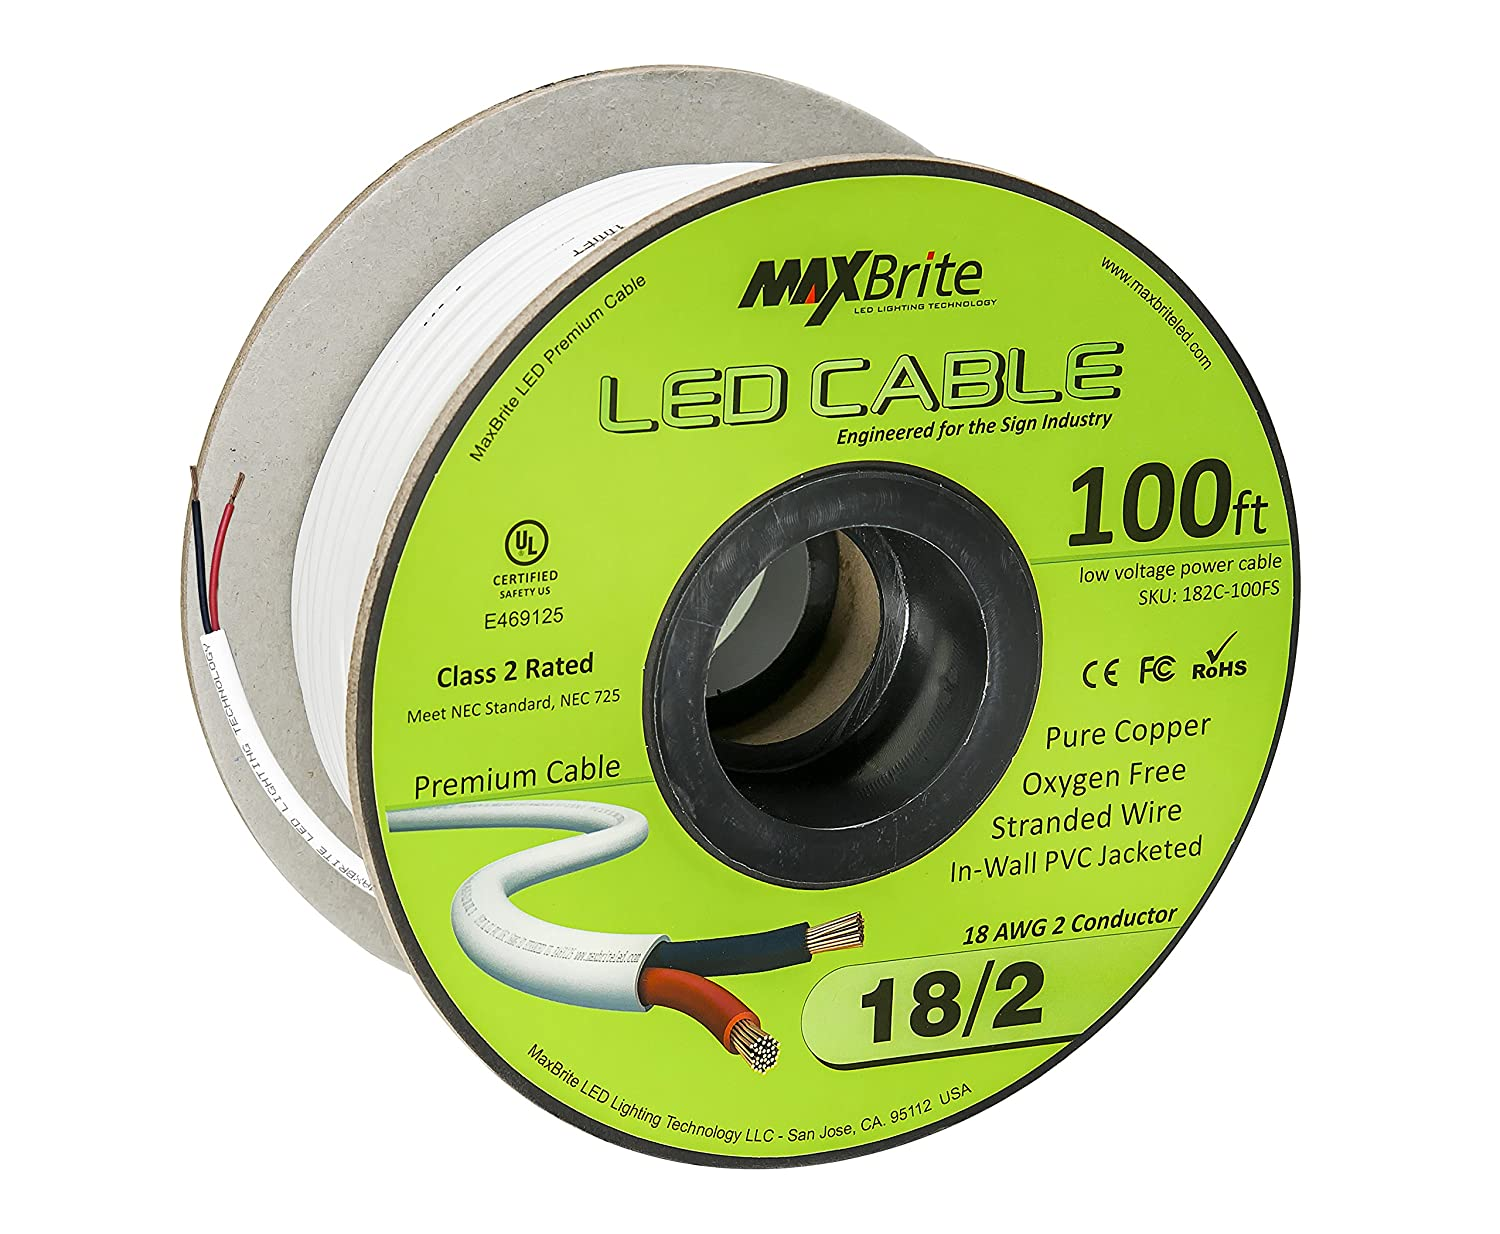 18awg Low Voltage Led Cable 2 Conductor Jacketed In Wall Wiring Channels Pvc Speaker Wire Ul Cul Class 50 Ft Reel Home Improvement